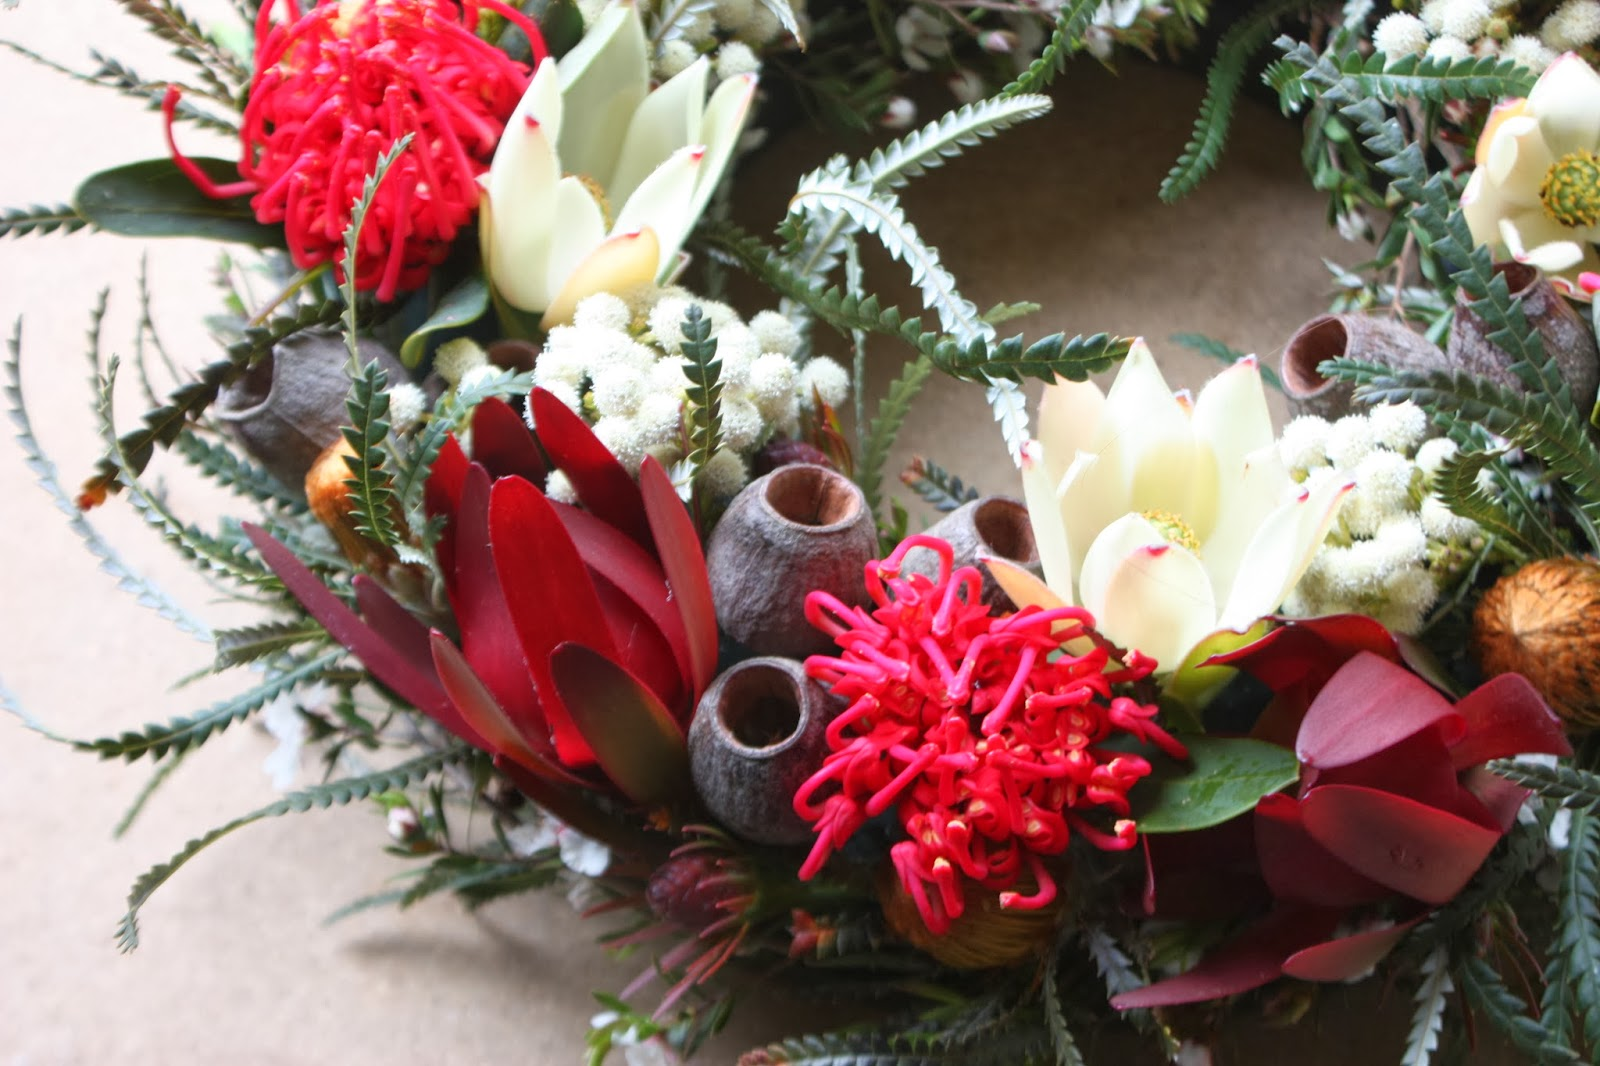 Swallows nest farm merry christmas and happy new year for Australia christmas decoration